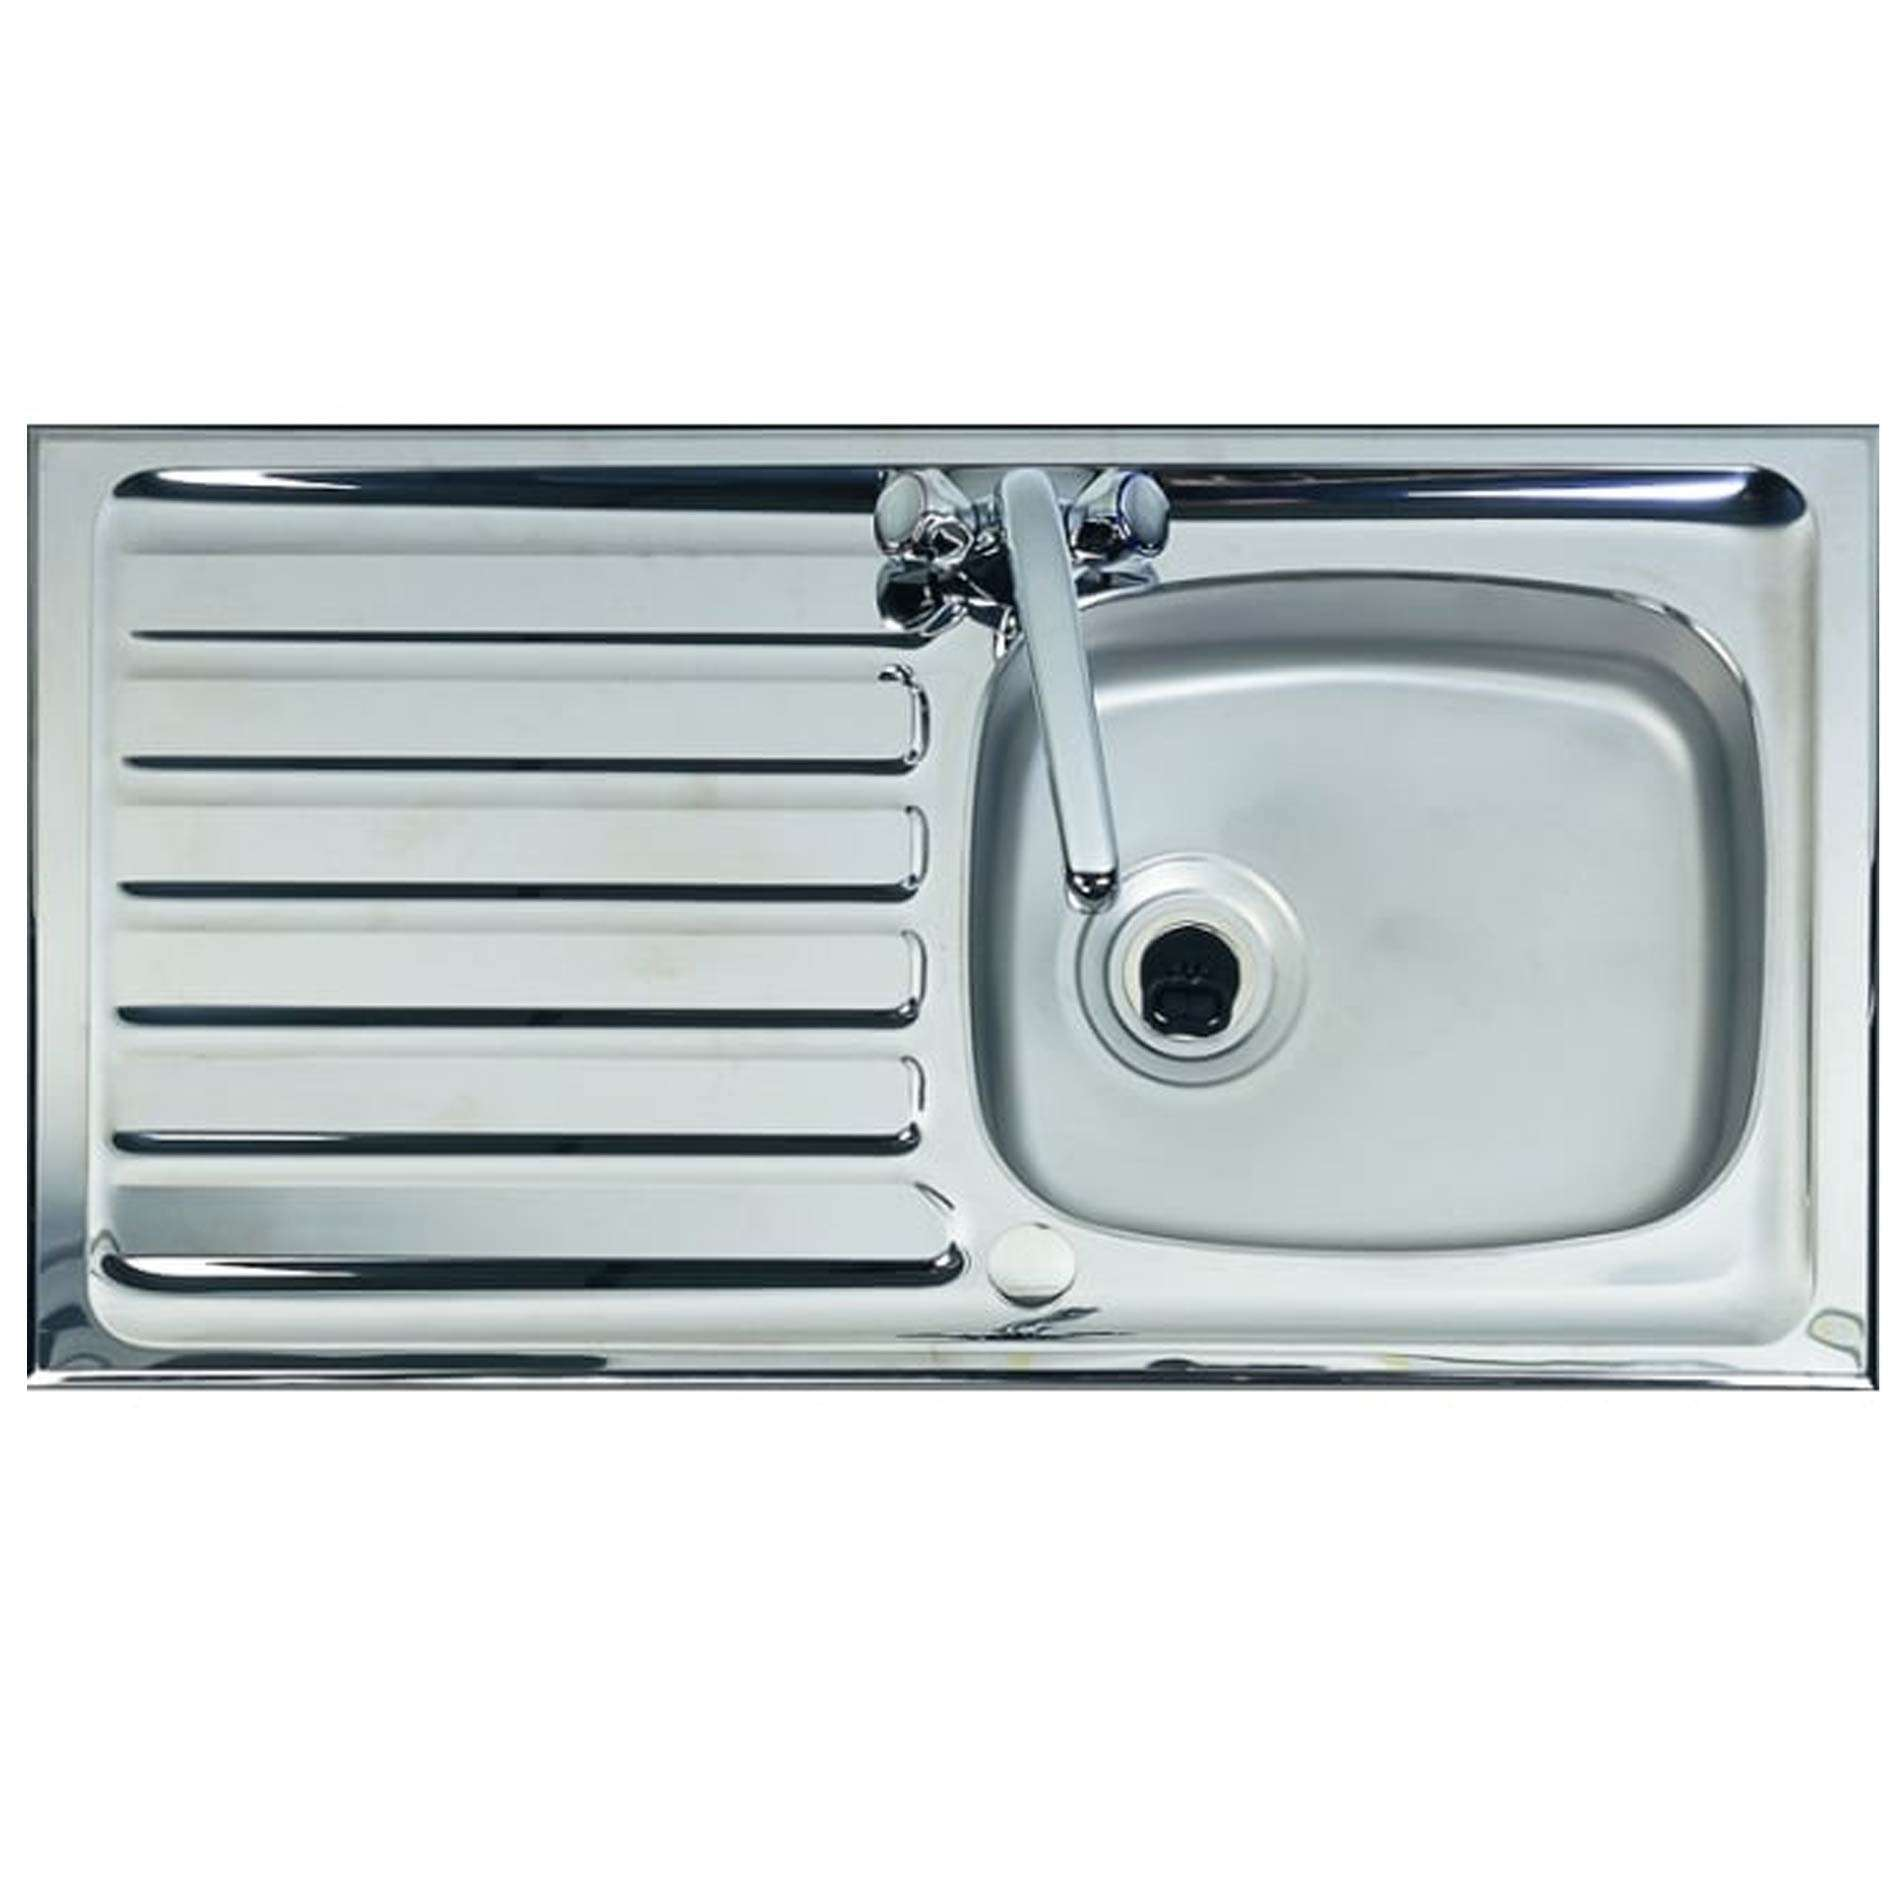 clearwater contract ph940 single bowl stainless steel sink